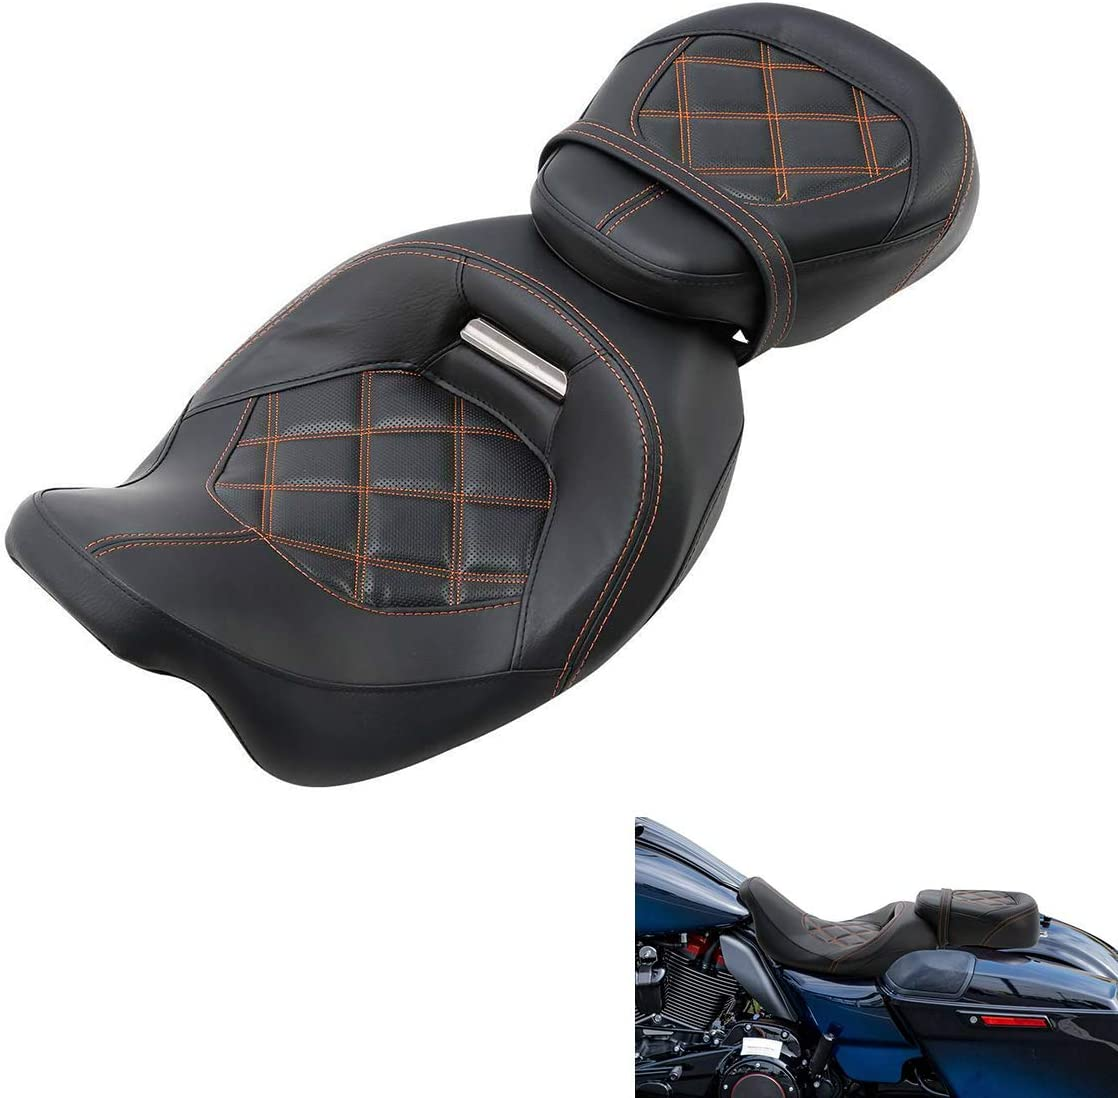 TCMT Low Profile Solo Touring Seat Driver Rider Seat Fit For Harley Touring Road King Road Glide Street Glide Electra Glide Ultra Classic 2009-2020